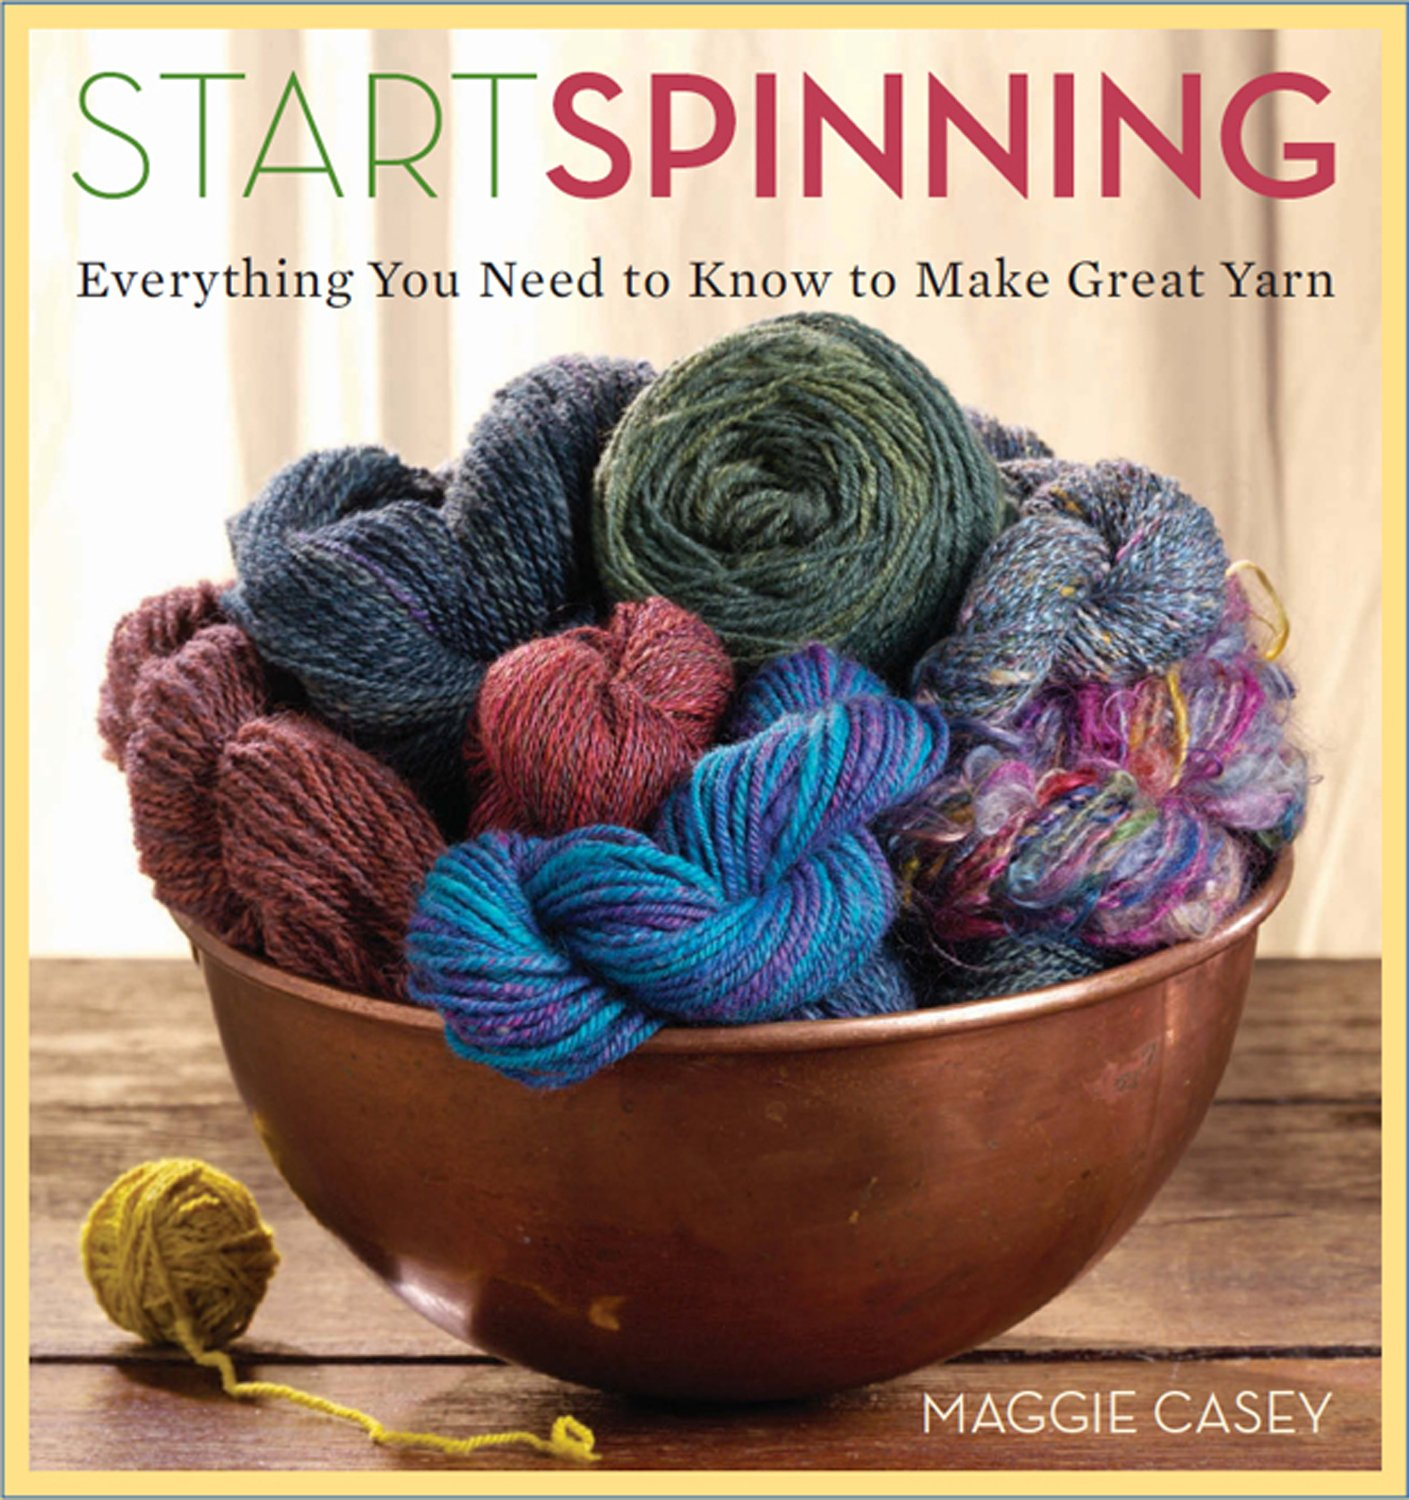 7b62632fe20 Start Spinning: Everything You Need to Know to Make Great Yarn ...